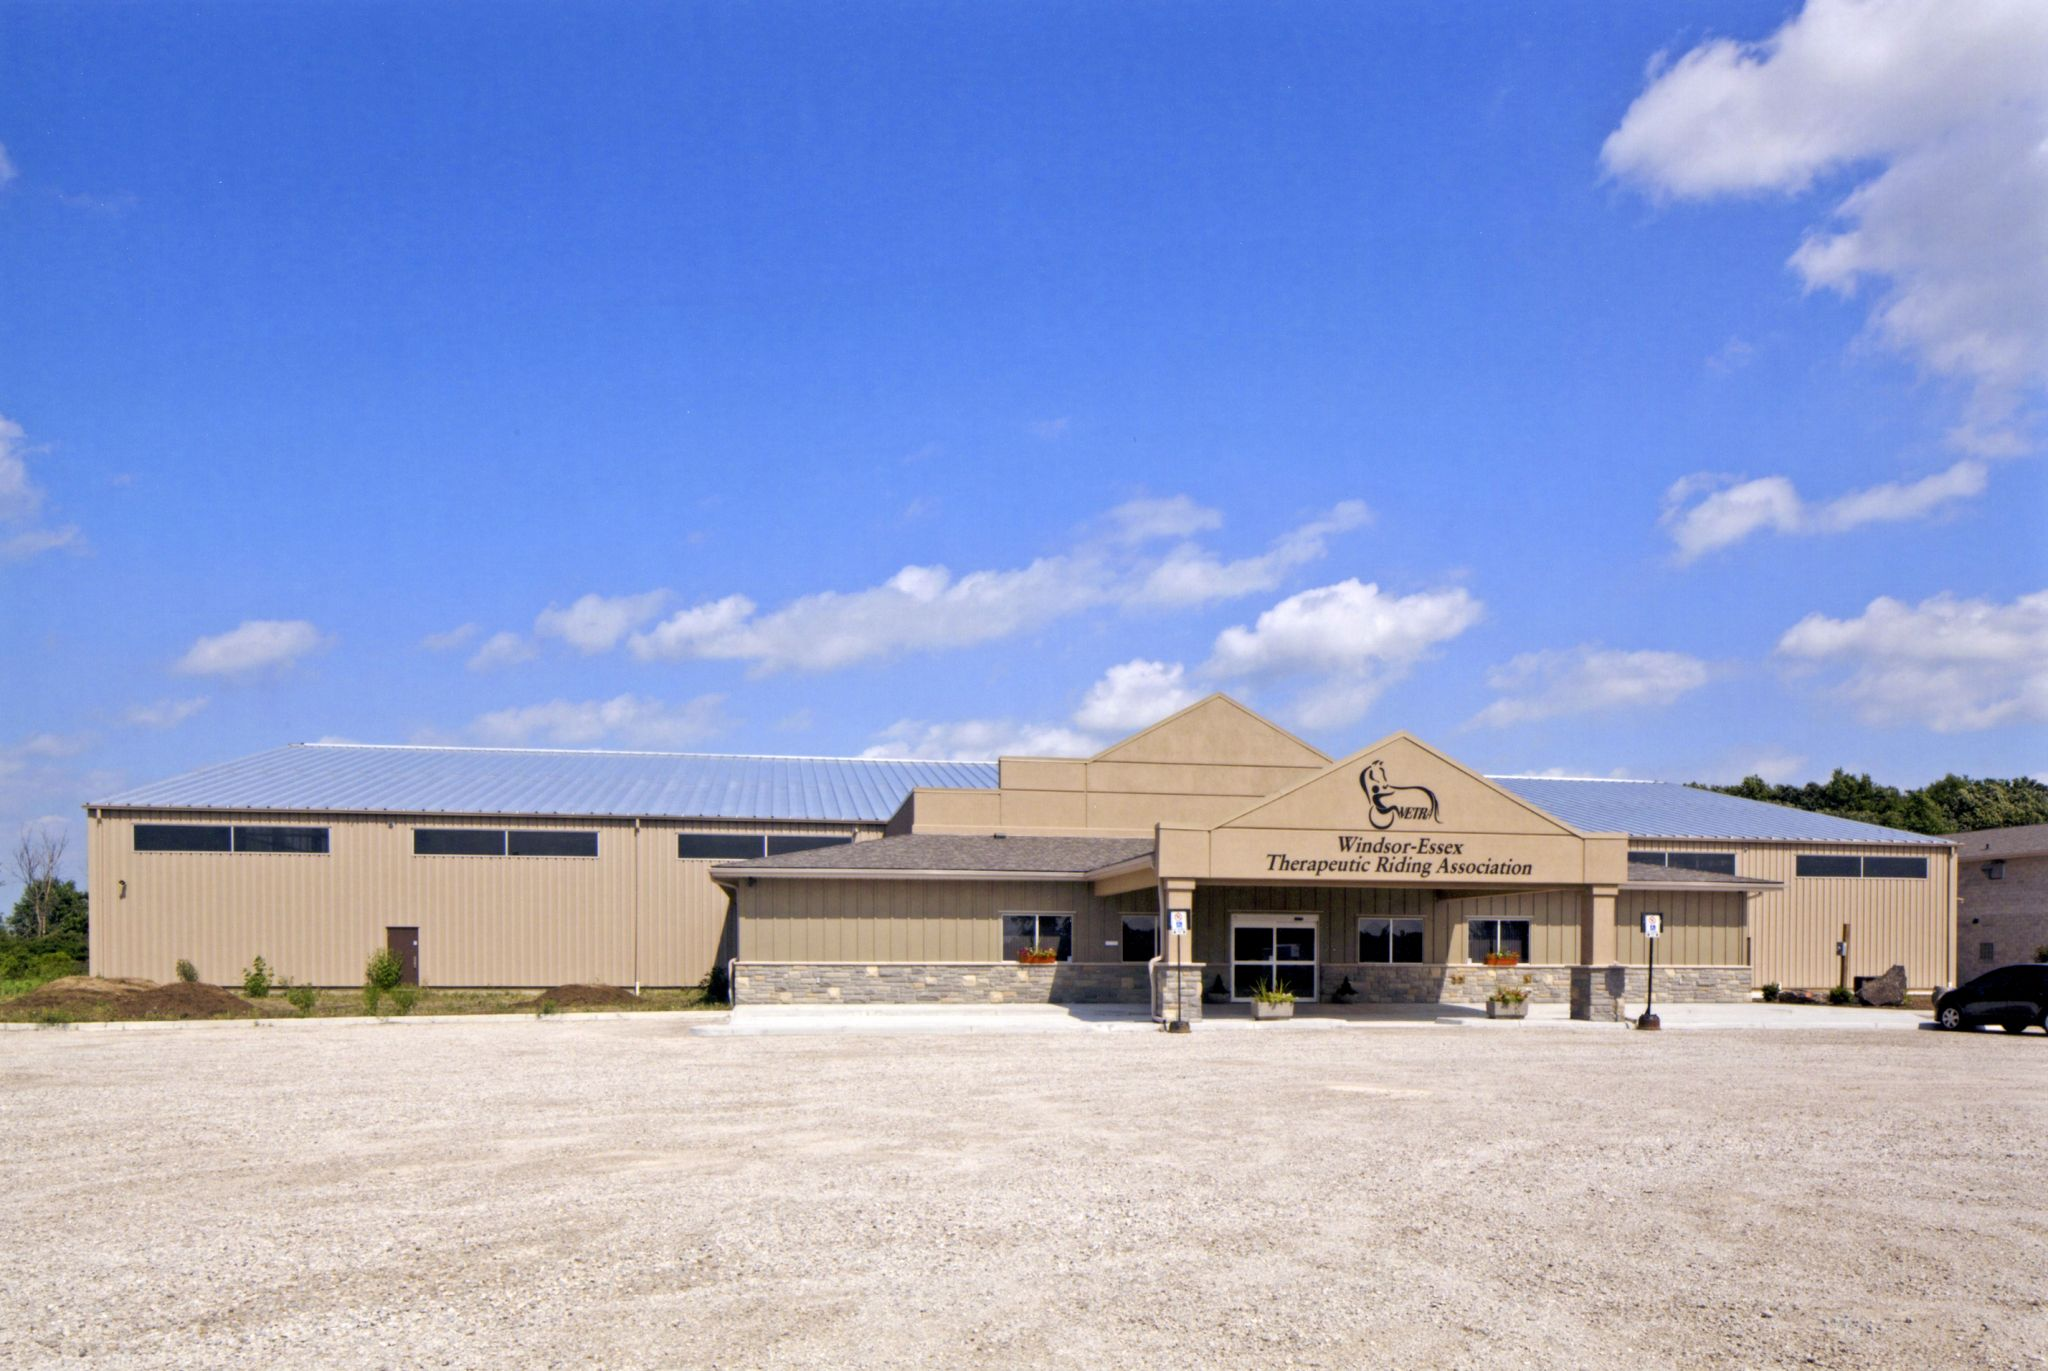 The Windsor-Essex Therapeutic Riding Association located in Essex, Ont., is a 21,367-m2 (230,000-sf) facility that provides equine-related therapy to those with disabilities.